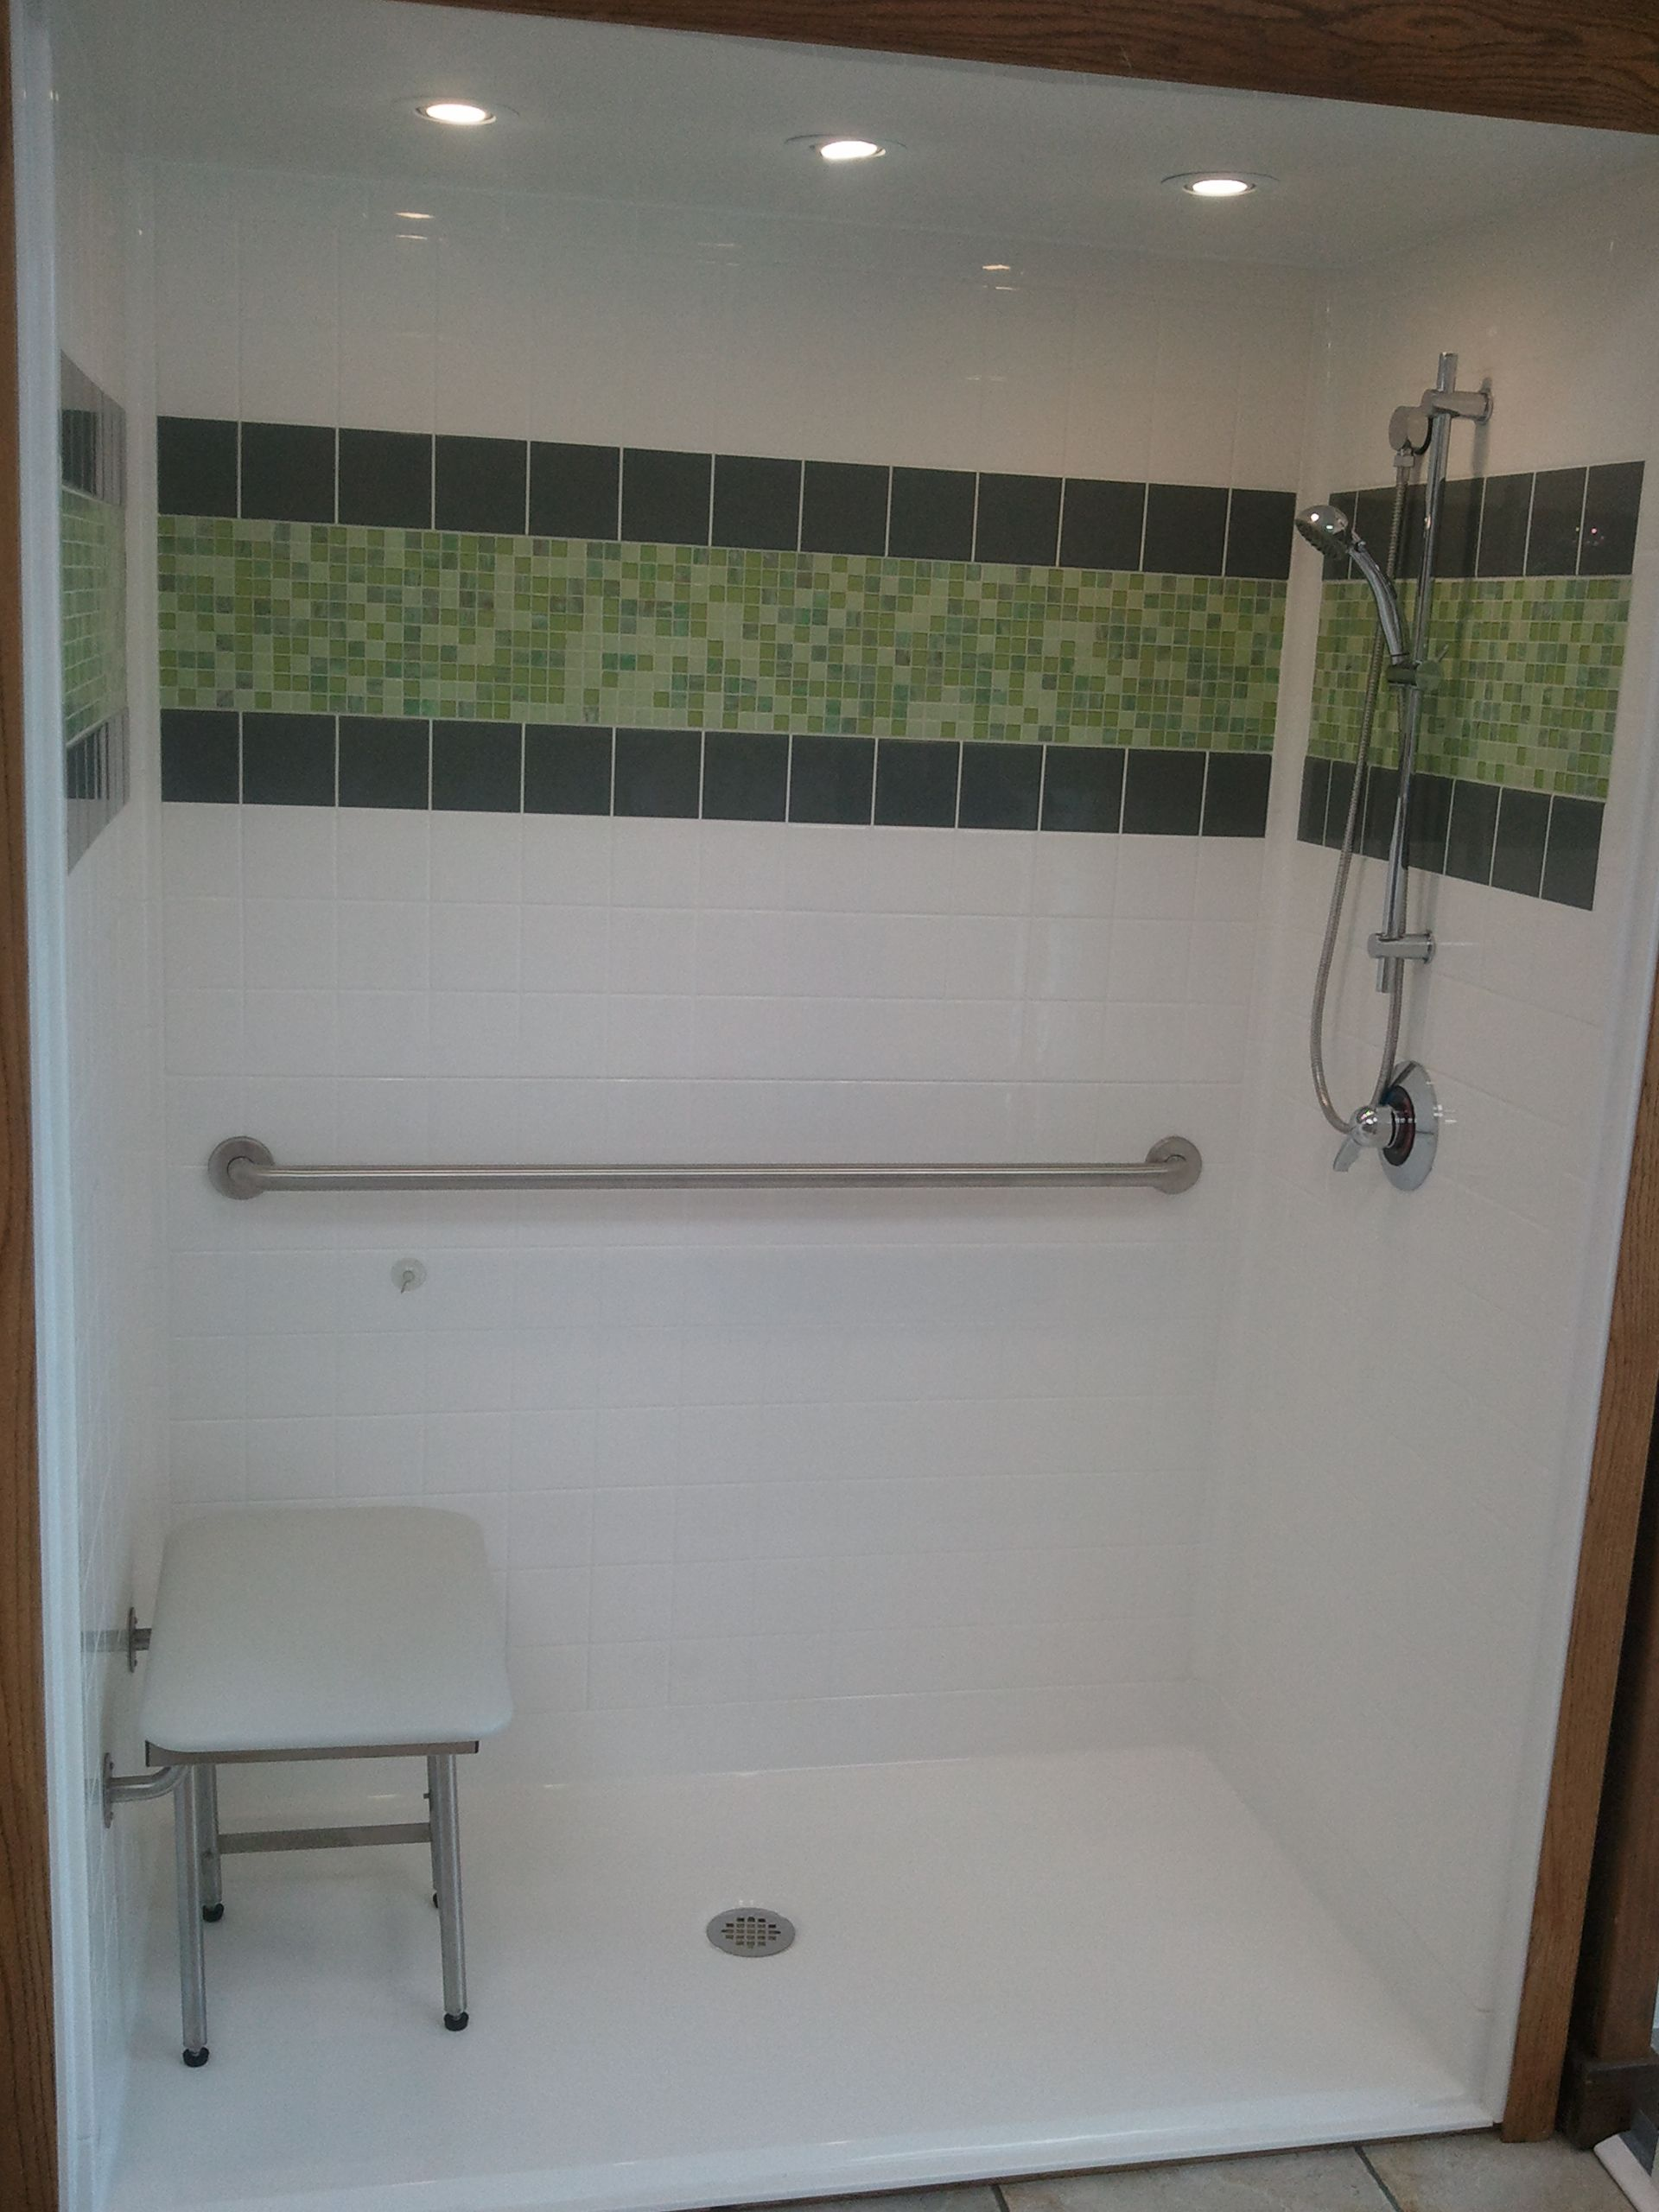 Best-Bath Low-Threshold Shower unit. | Aging-in Place | Pinterest